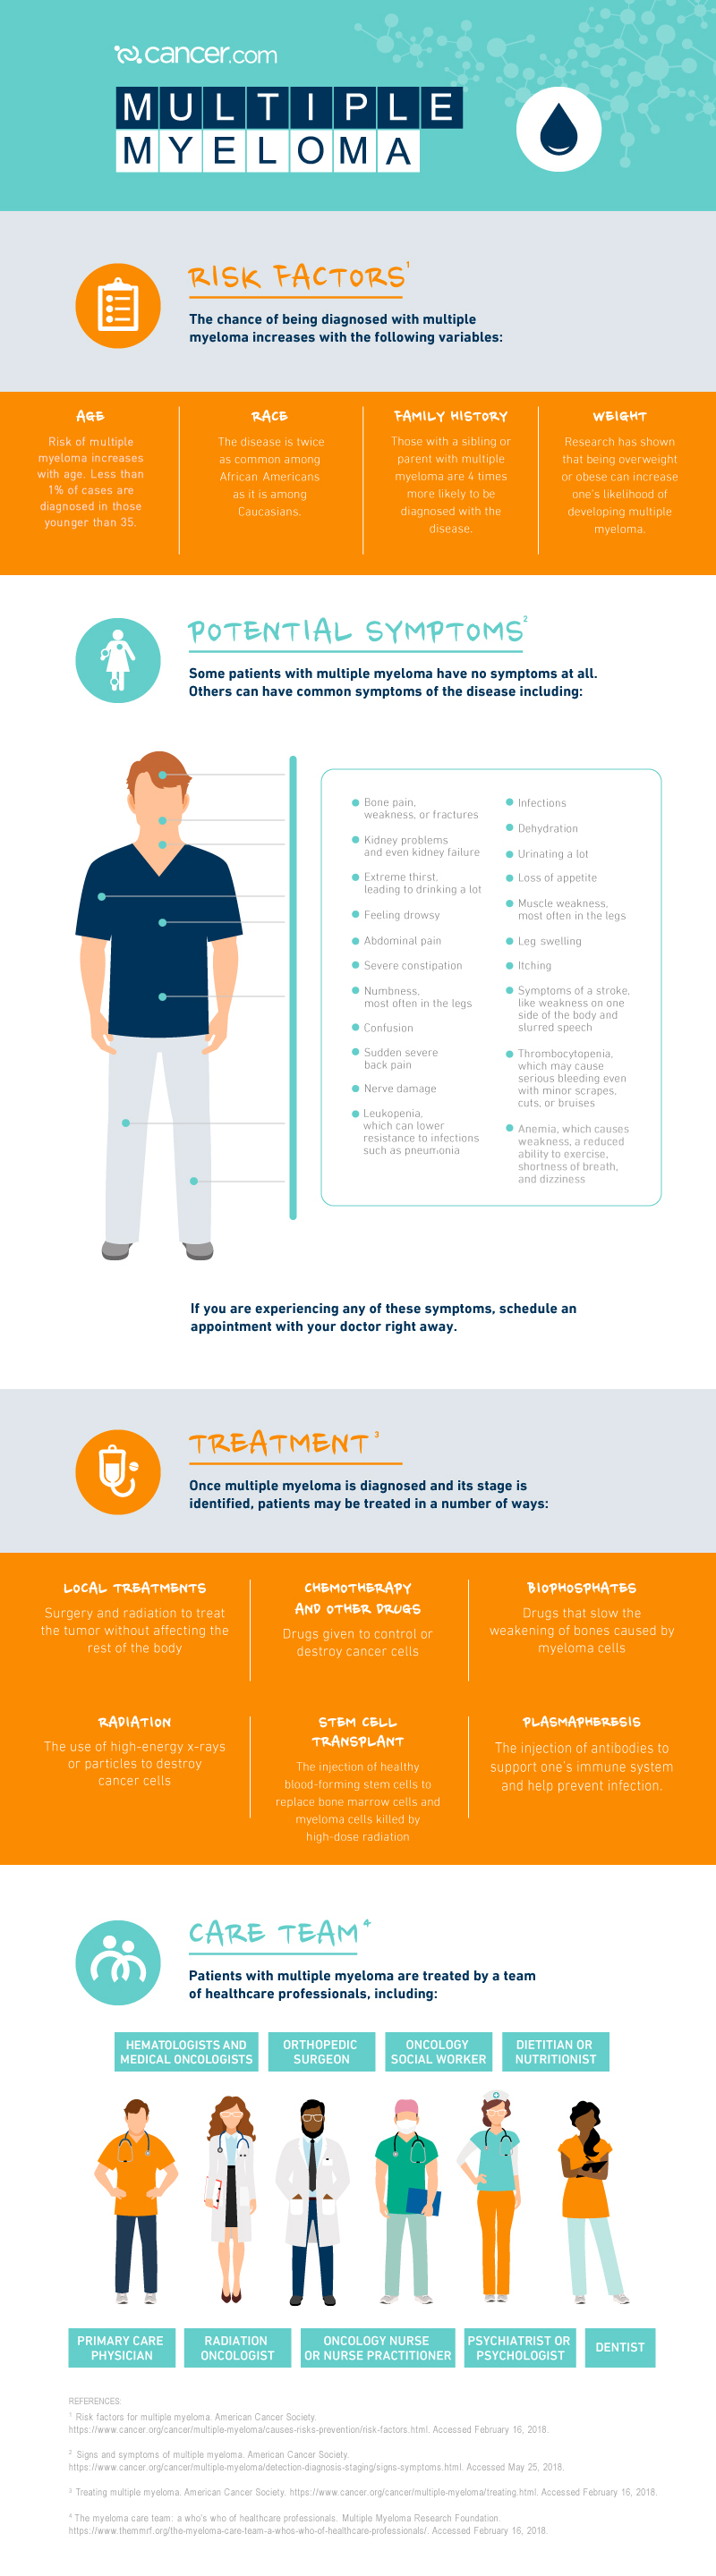 Infographic_Multiple_Myeloma_Overview with edits.jpg